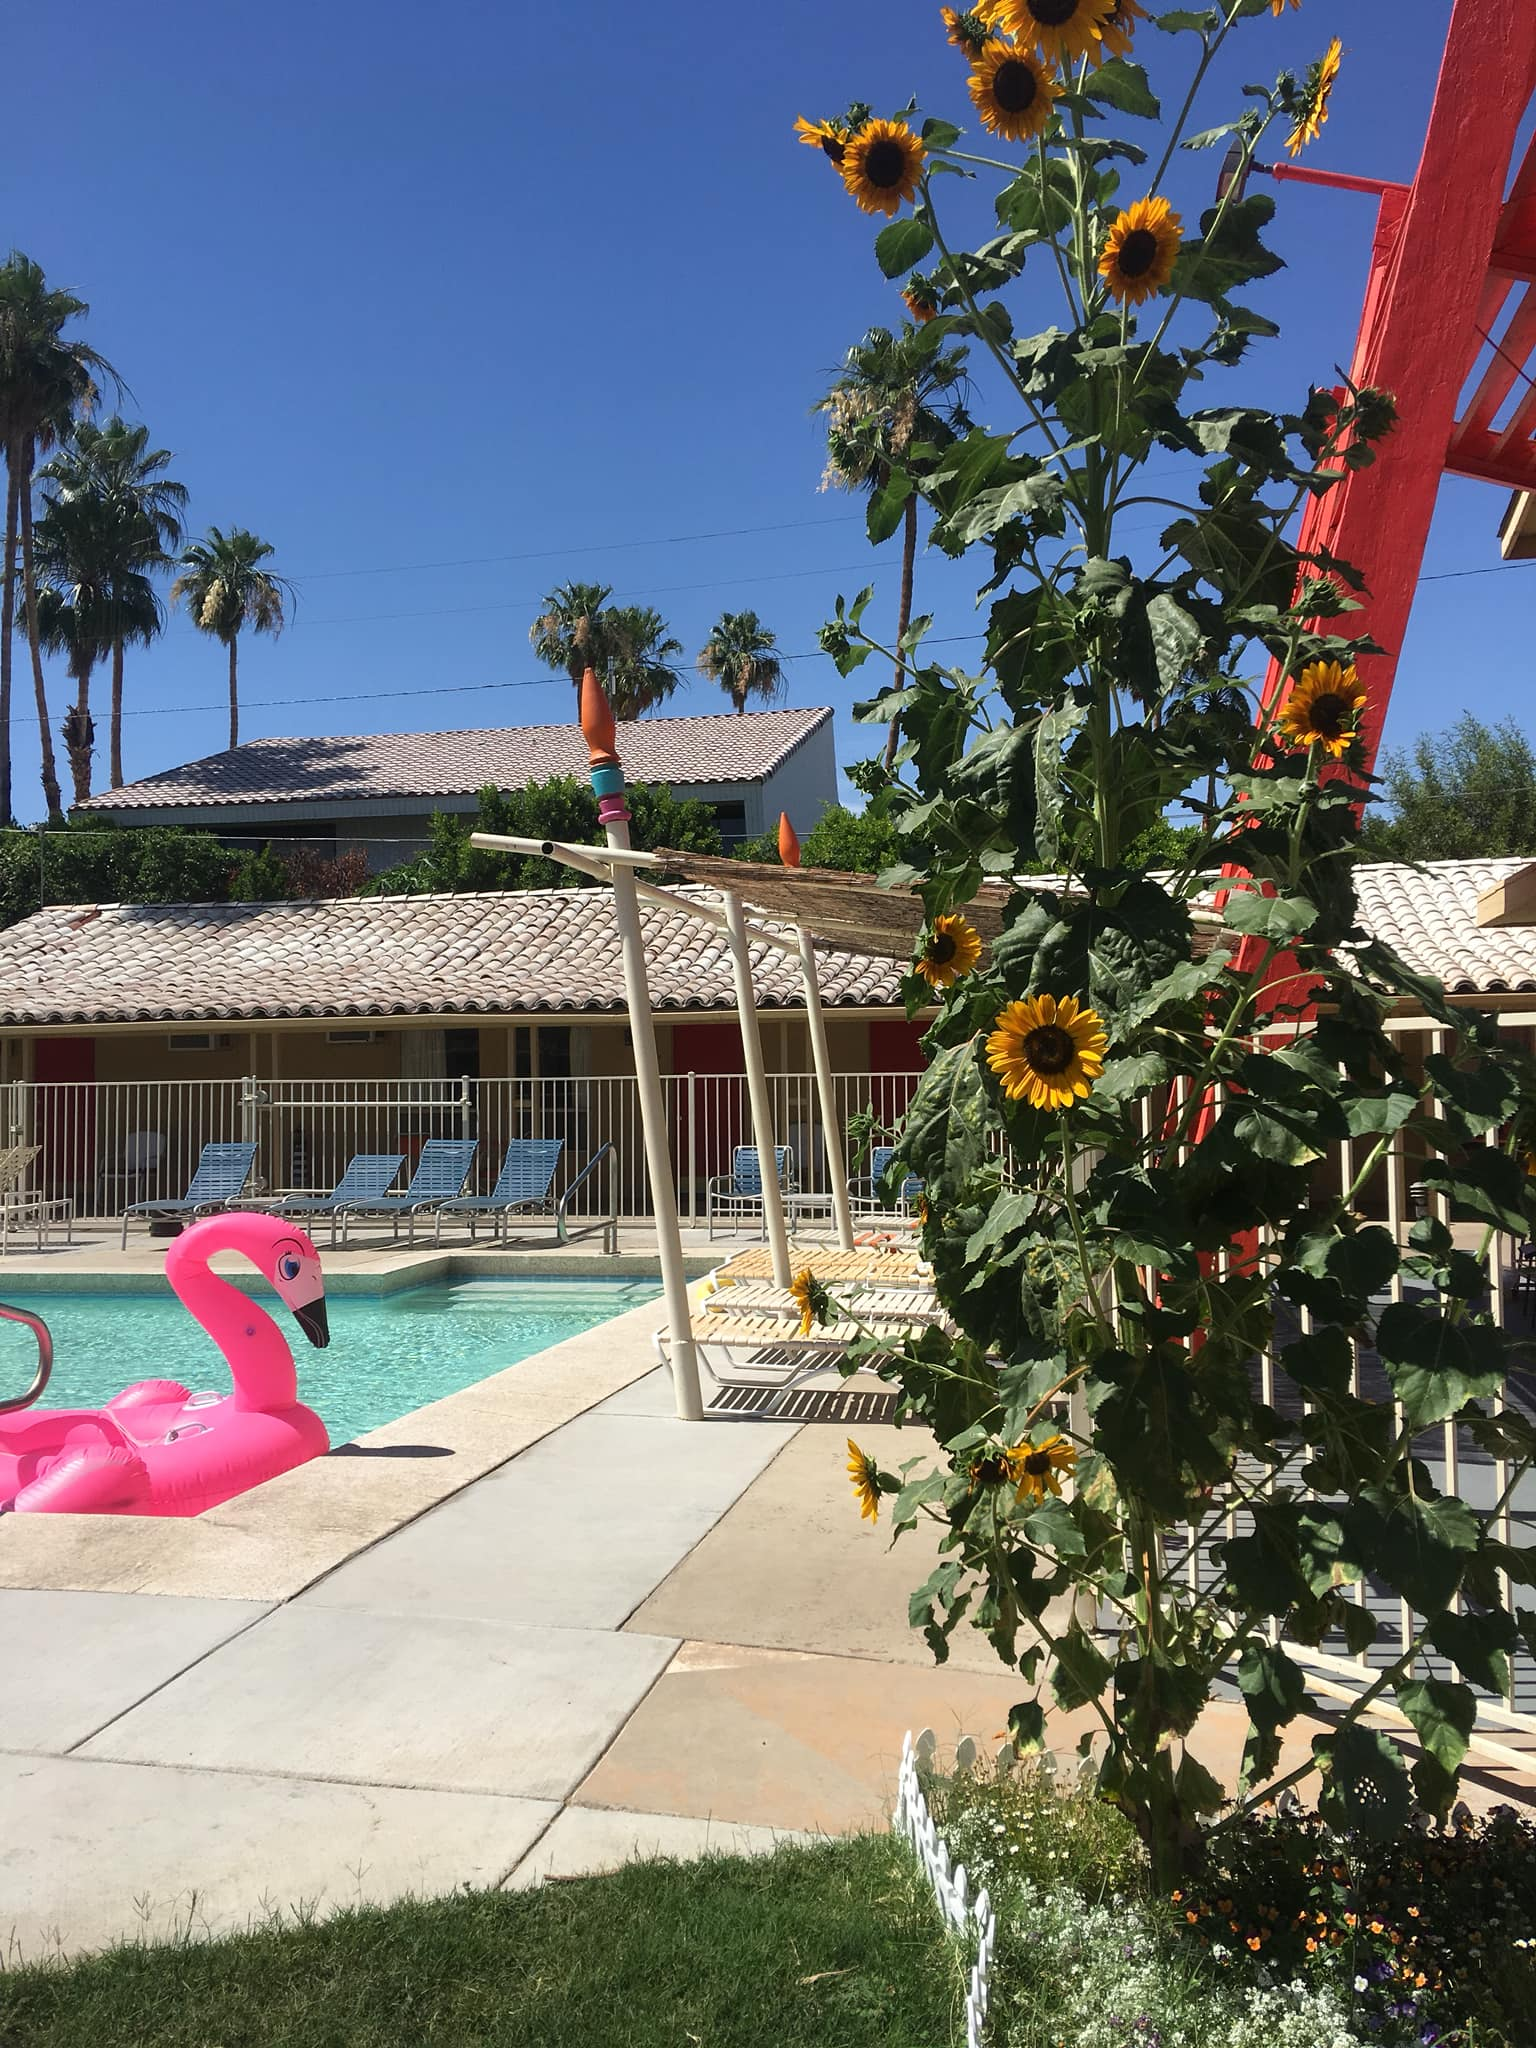 The Aloha Hotel is a woman-owned property in the Tahquitz River Estates